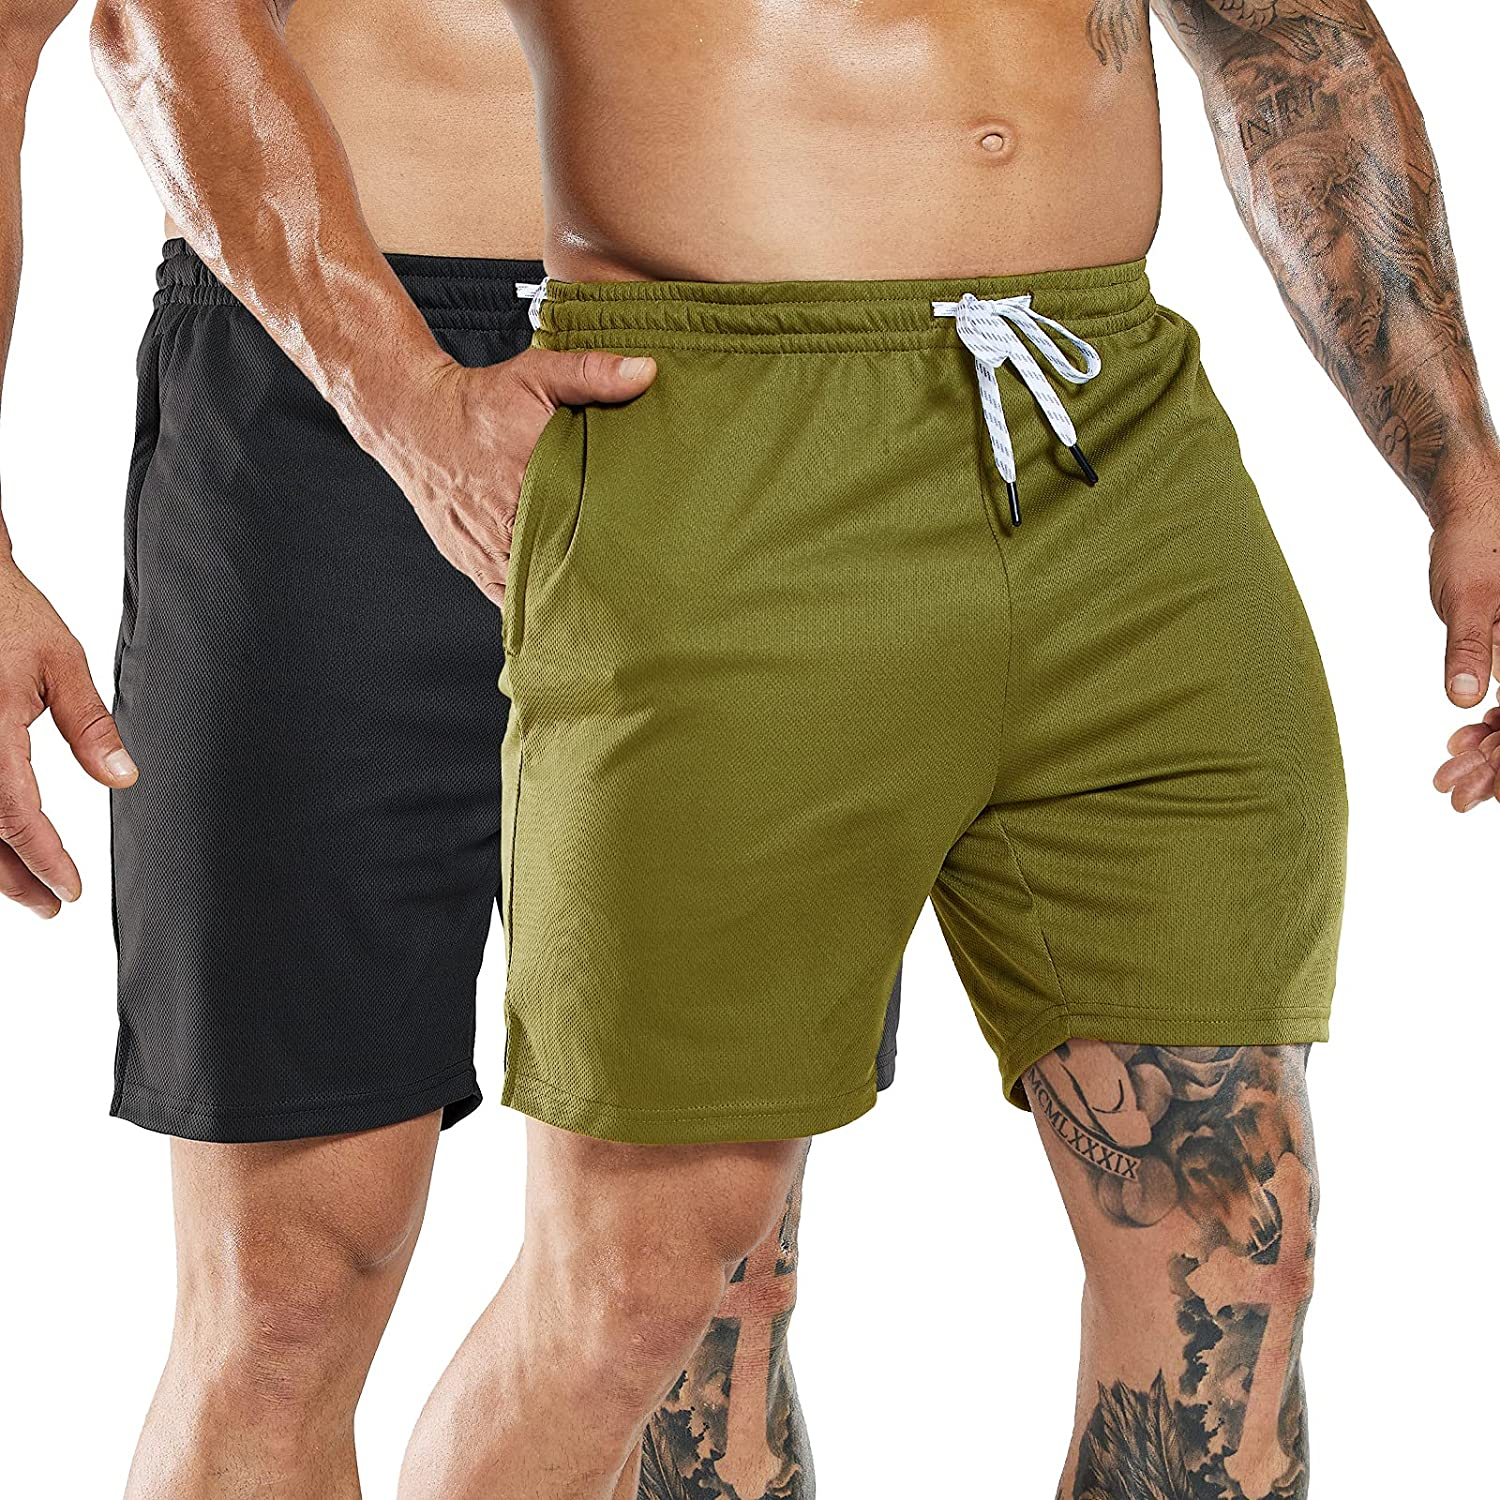 Nepest Mens 2-Pack Quick Dry Running Shorts with Zipper Pockets, 7 Inch Inseam Gym Athletic Workout Shorts, No Liner : Clothing, Shoes & Jewelry